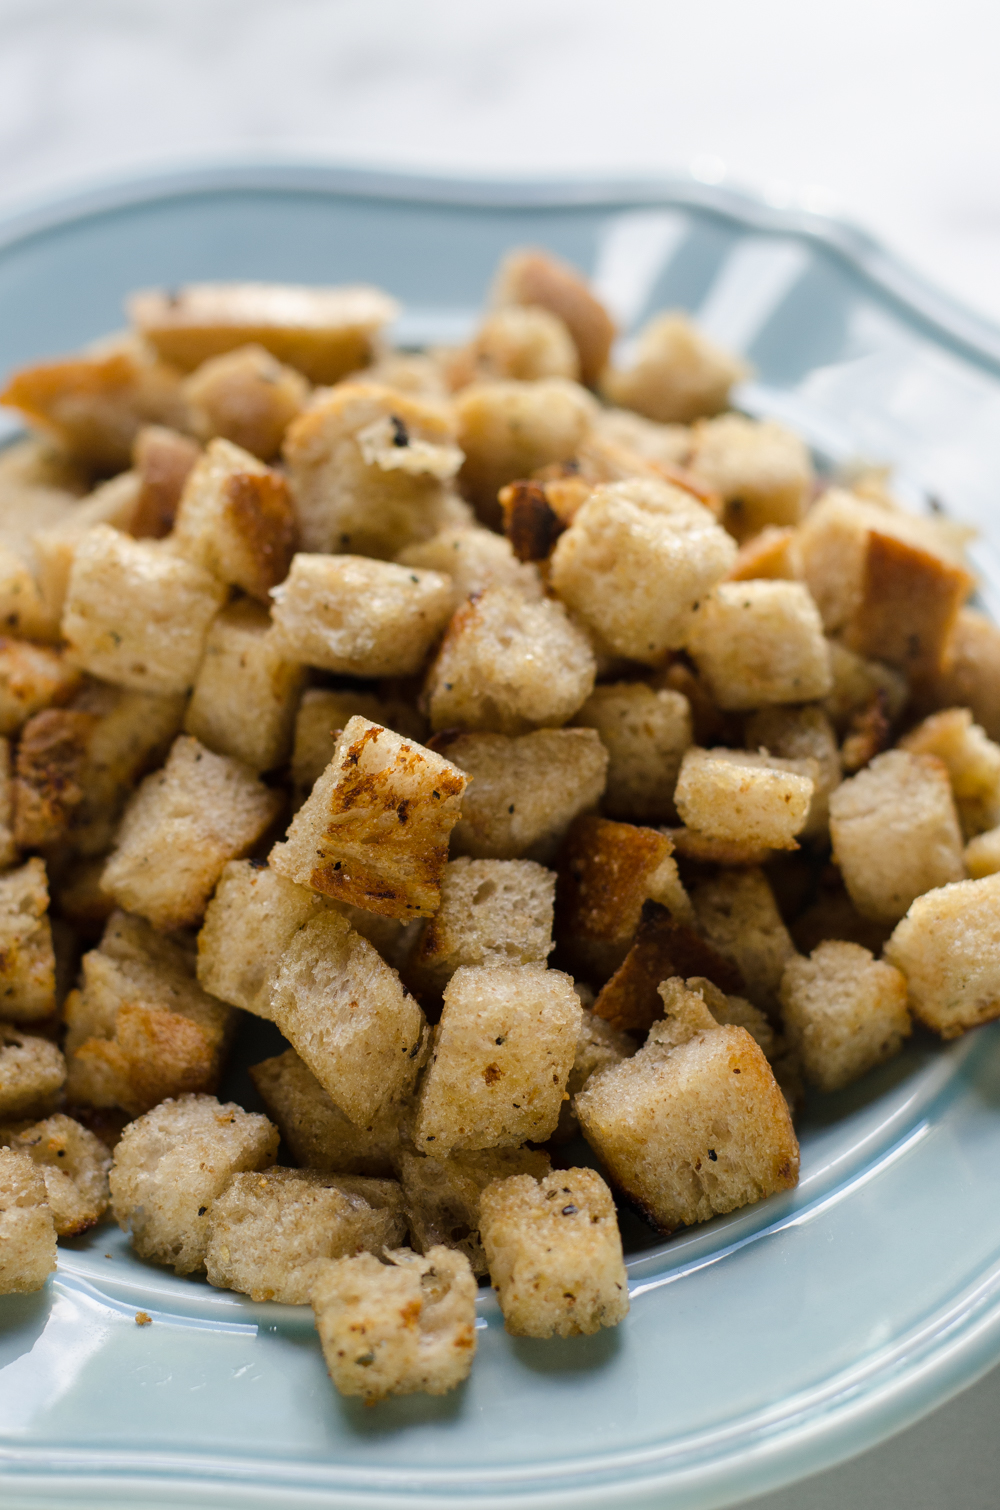 How to Make Croutons Over the Stove